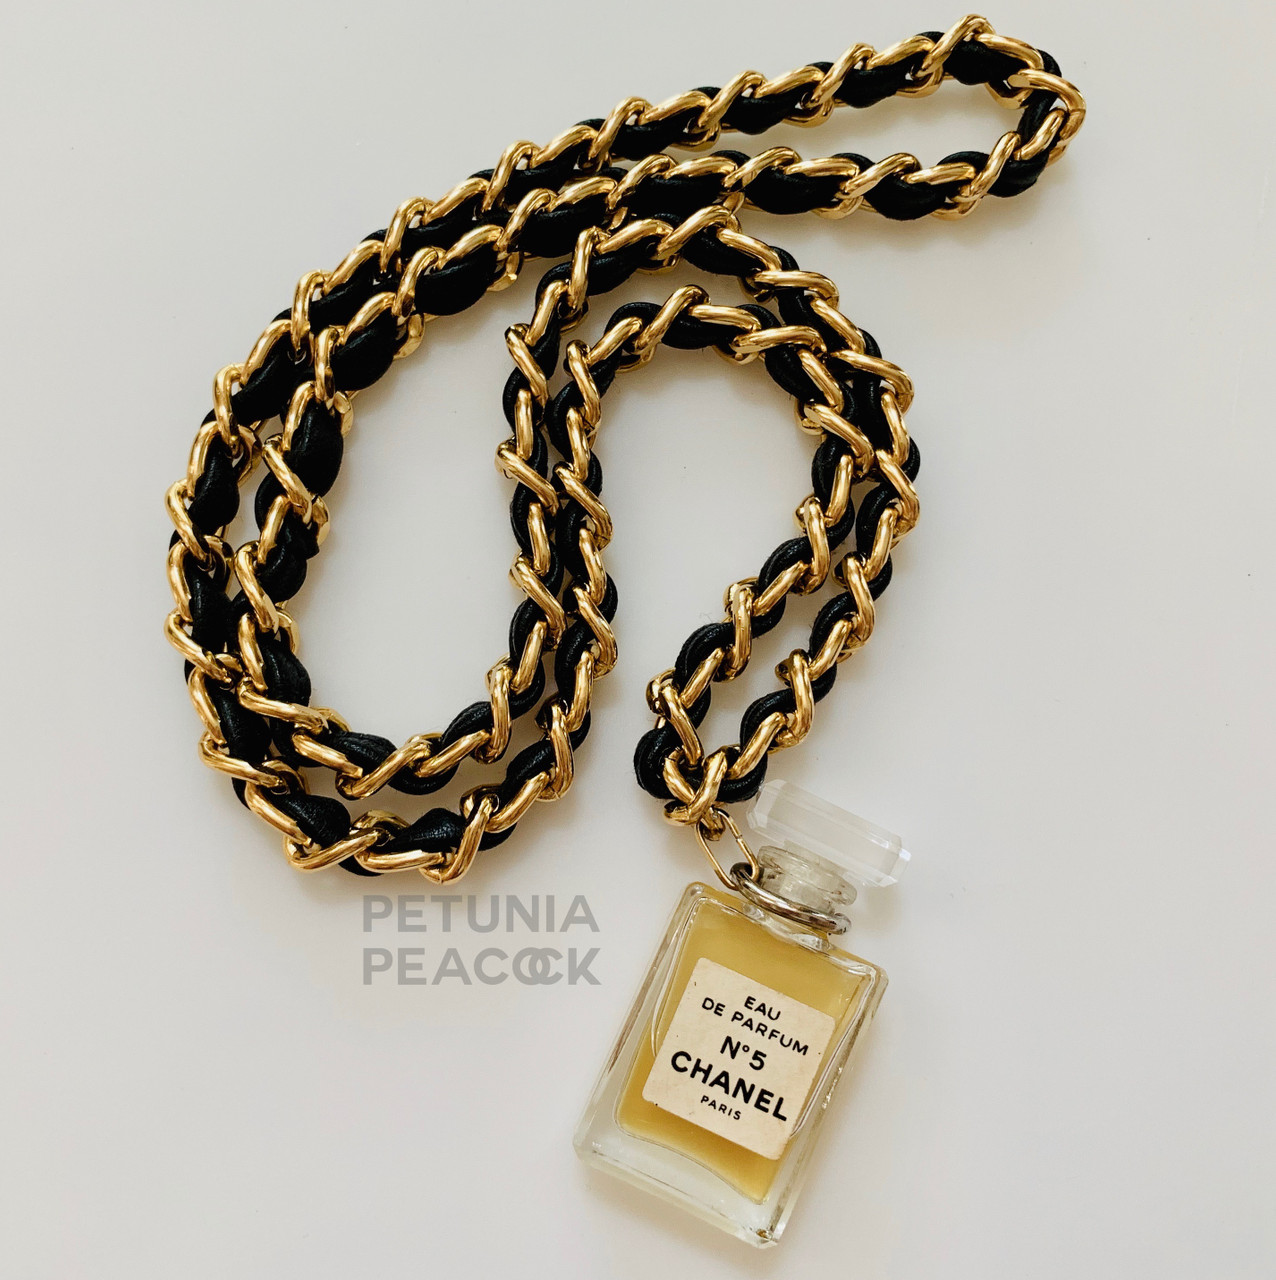 Chanel No 5 Perfume Bottle Necklace Petunia Peacock Vintage Chanel Jewelry